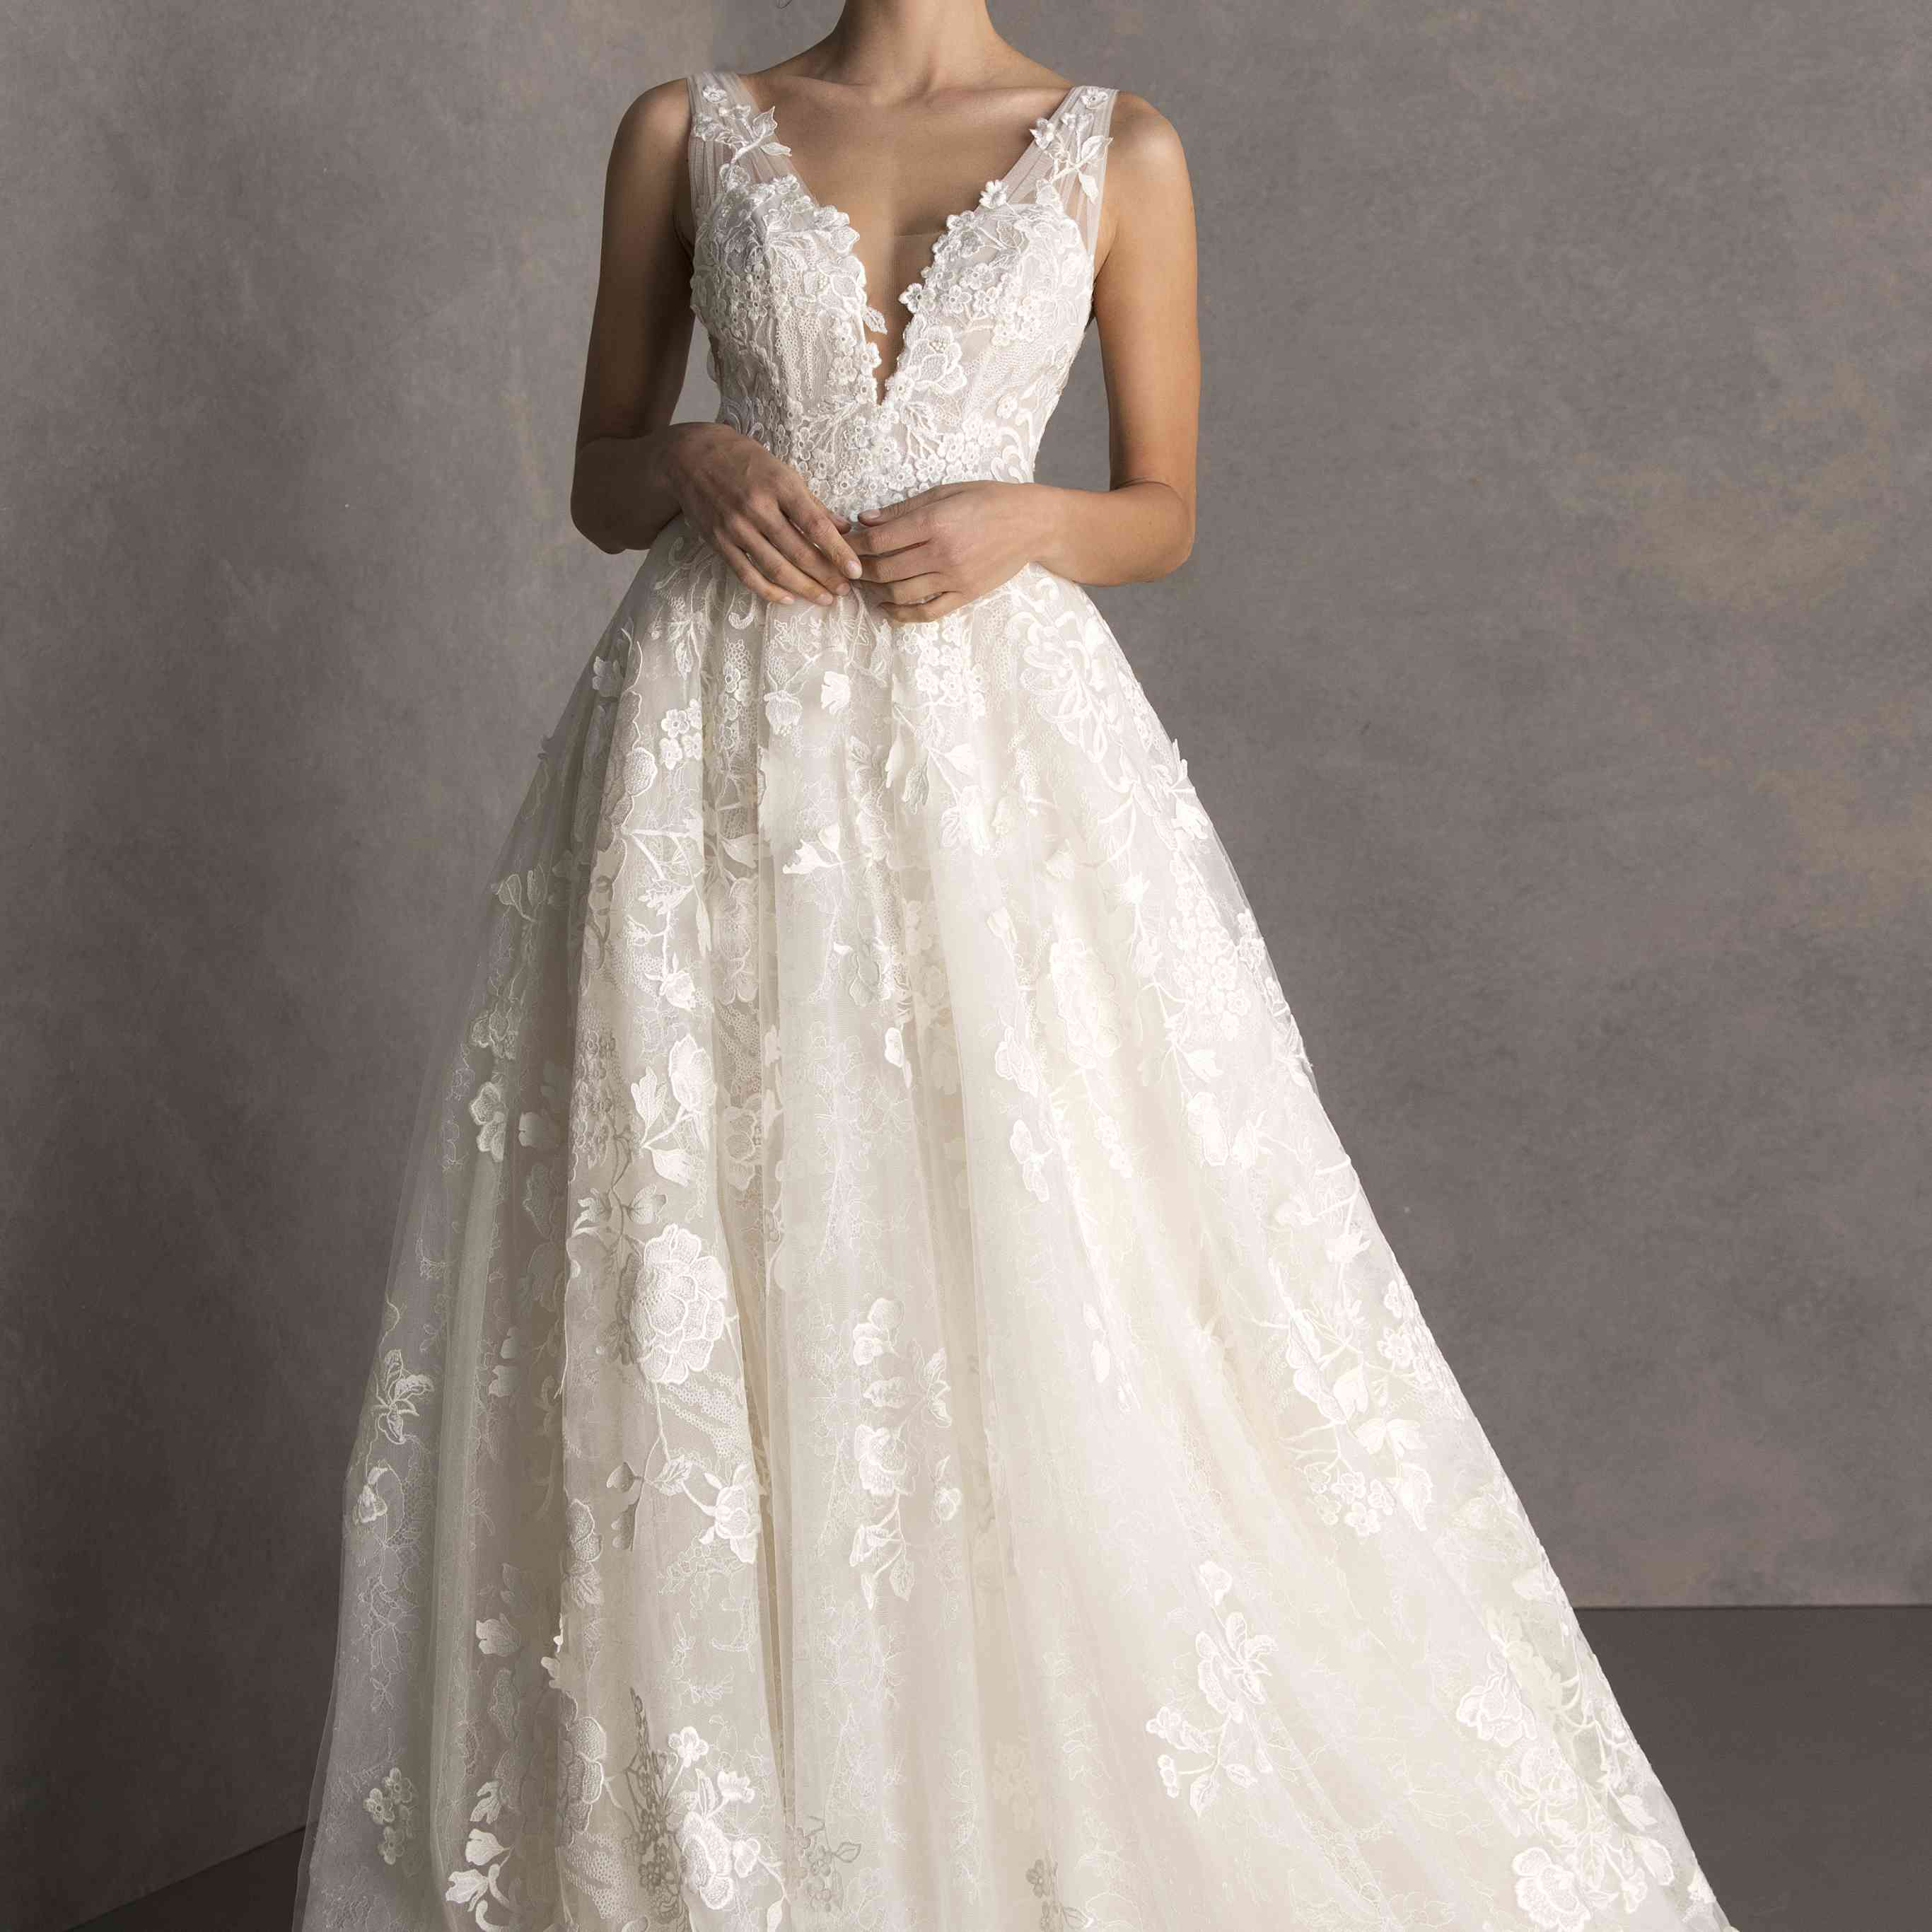 Model in floral-embroidered ballgown with plunging illusion neckline